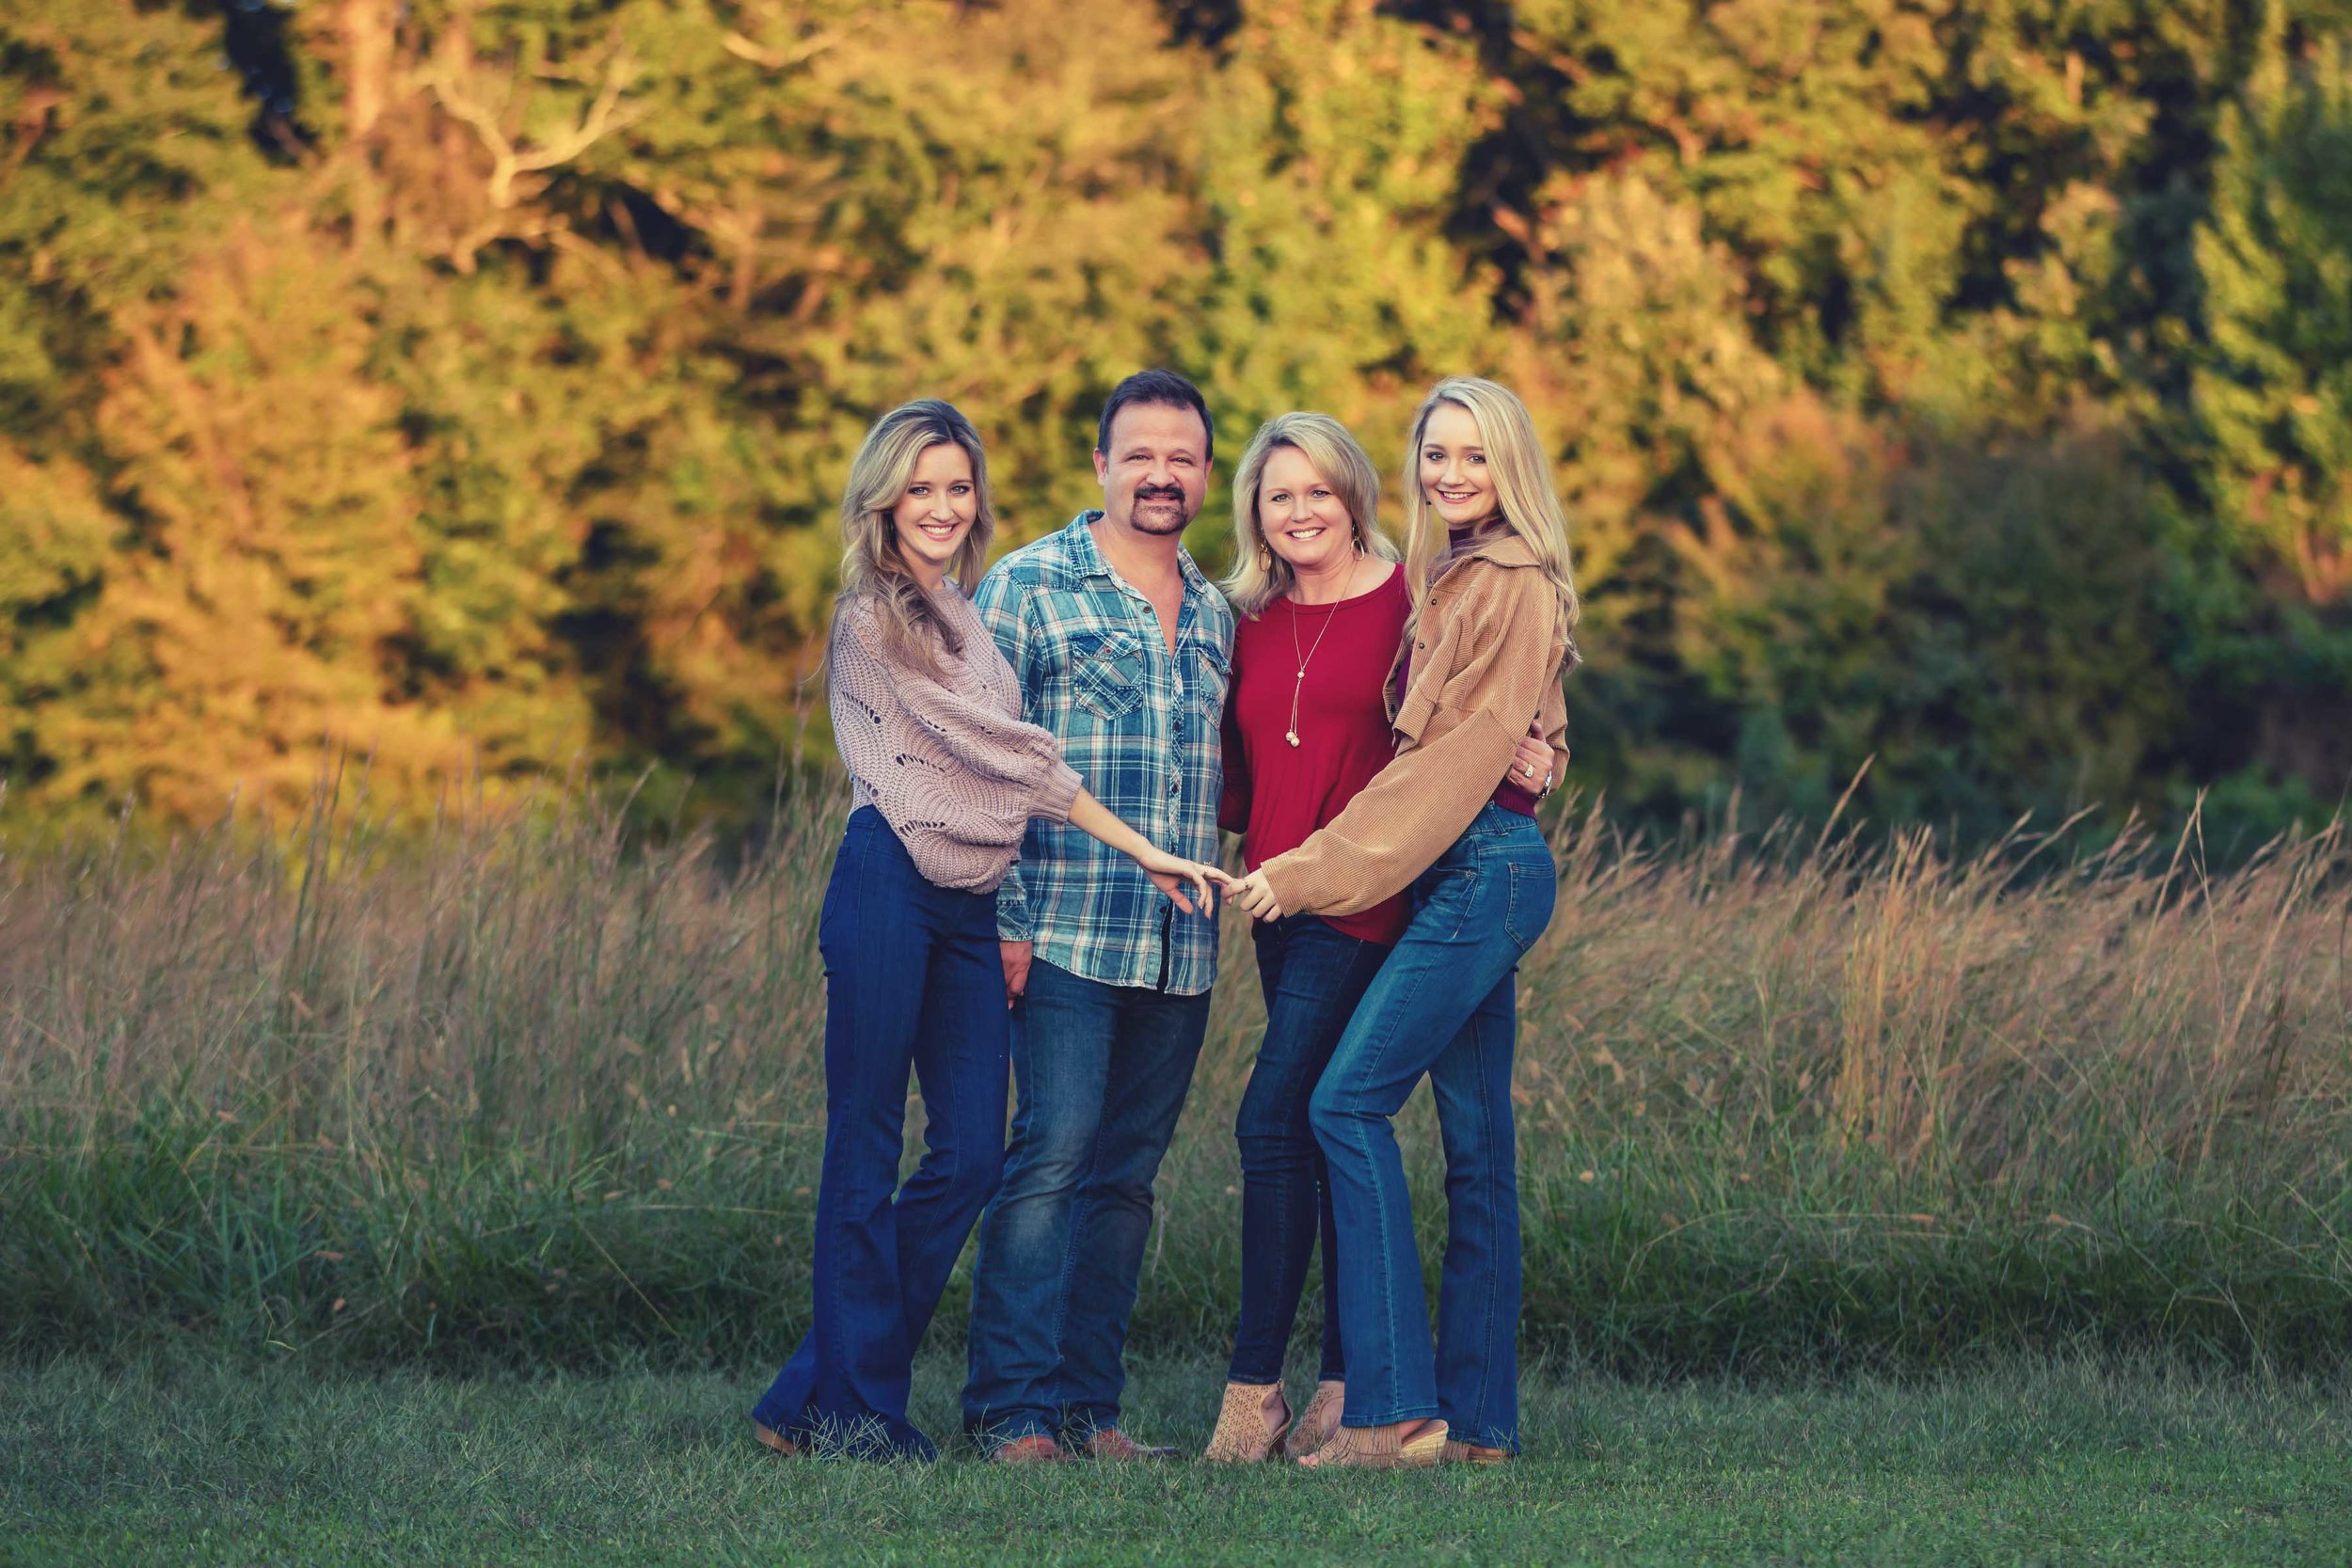 Weatherley-family-pictures-central-arkansas-cabot-jodie-kelly.jpg